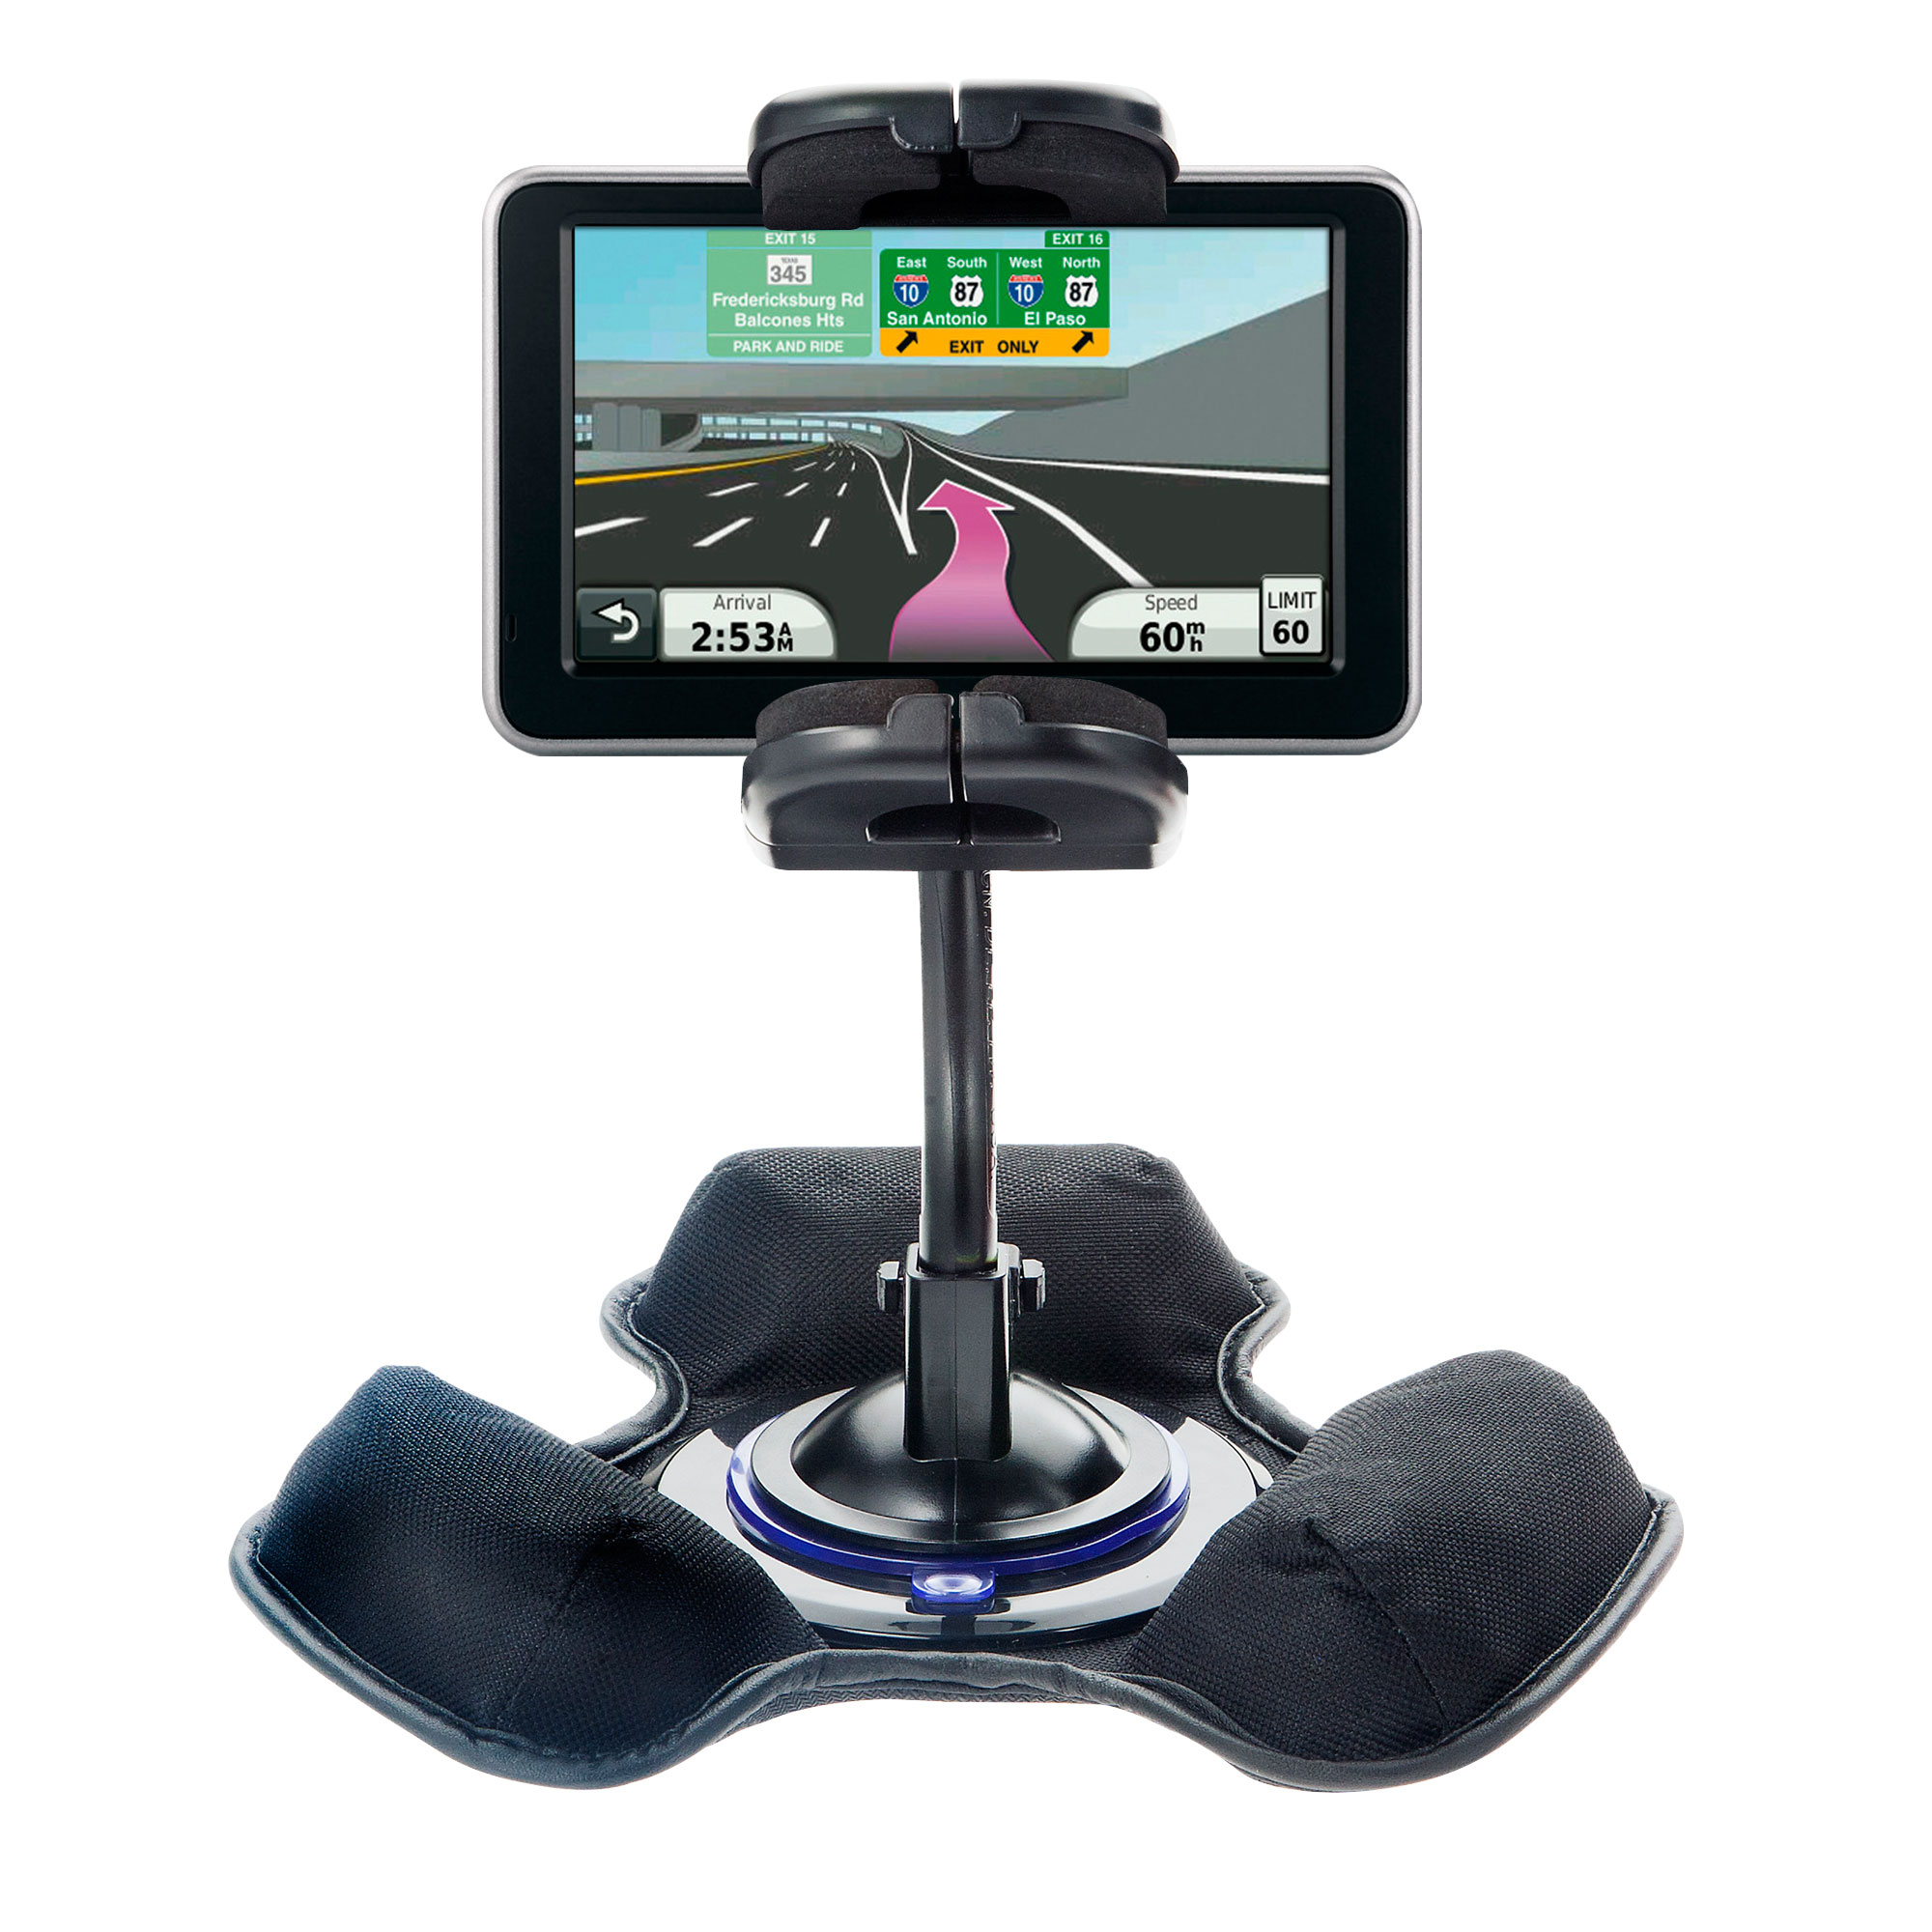 Dash and Windshield Holder compatible with the Garmin Nuvi 2450